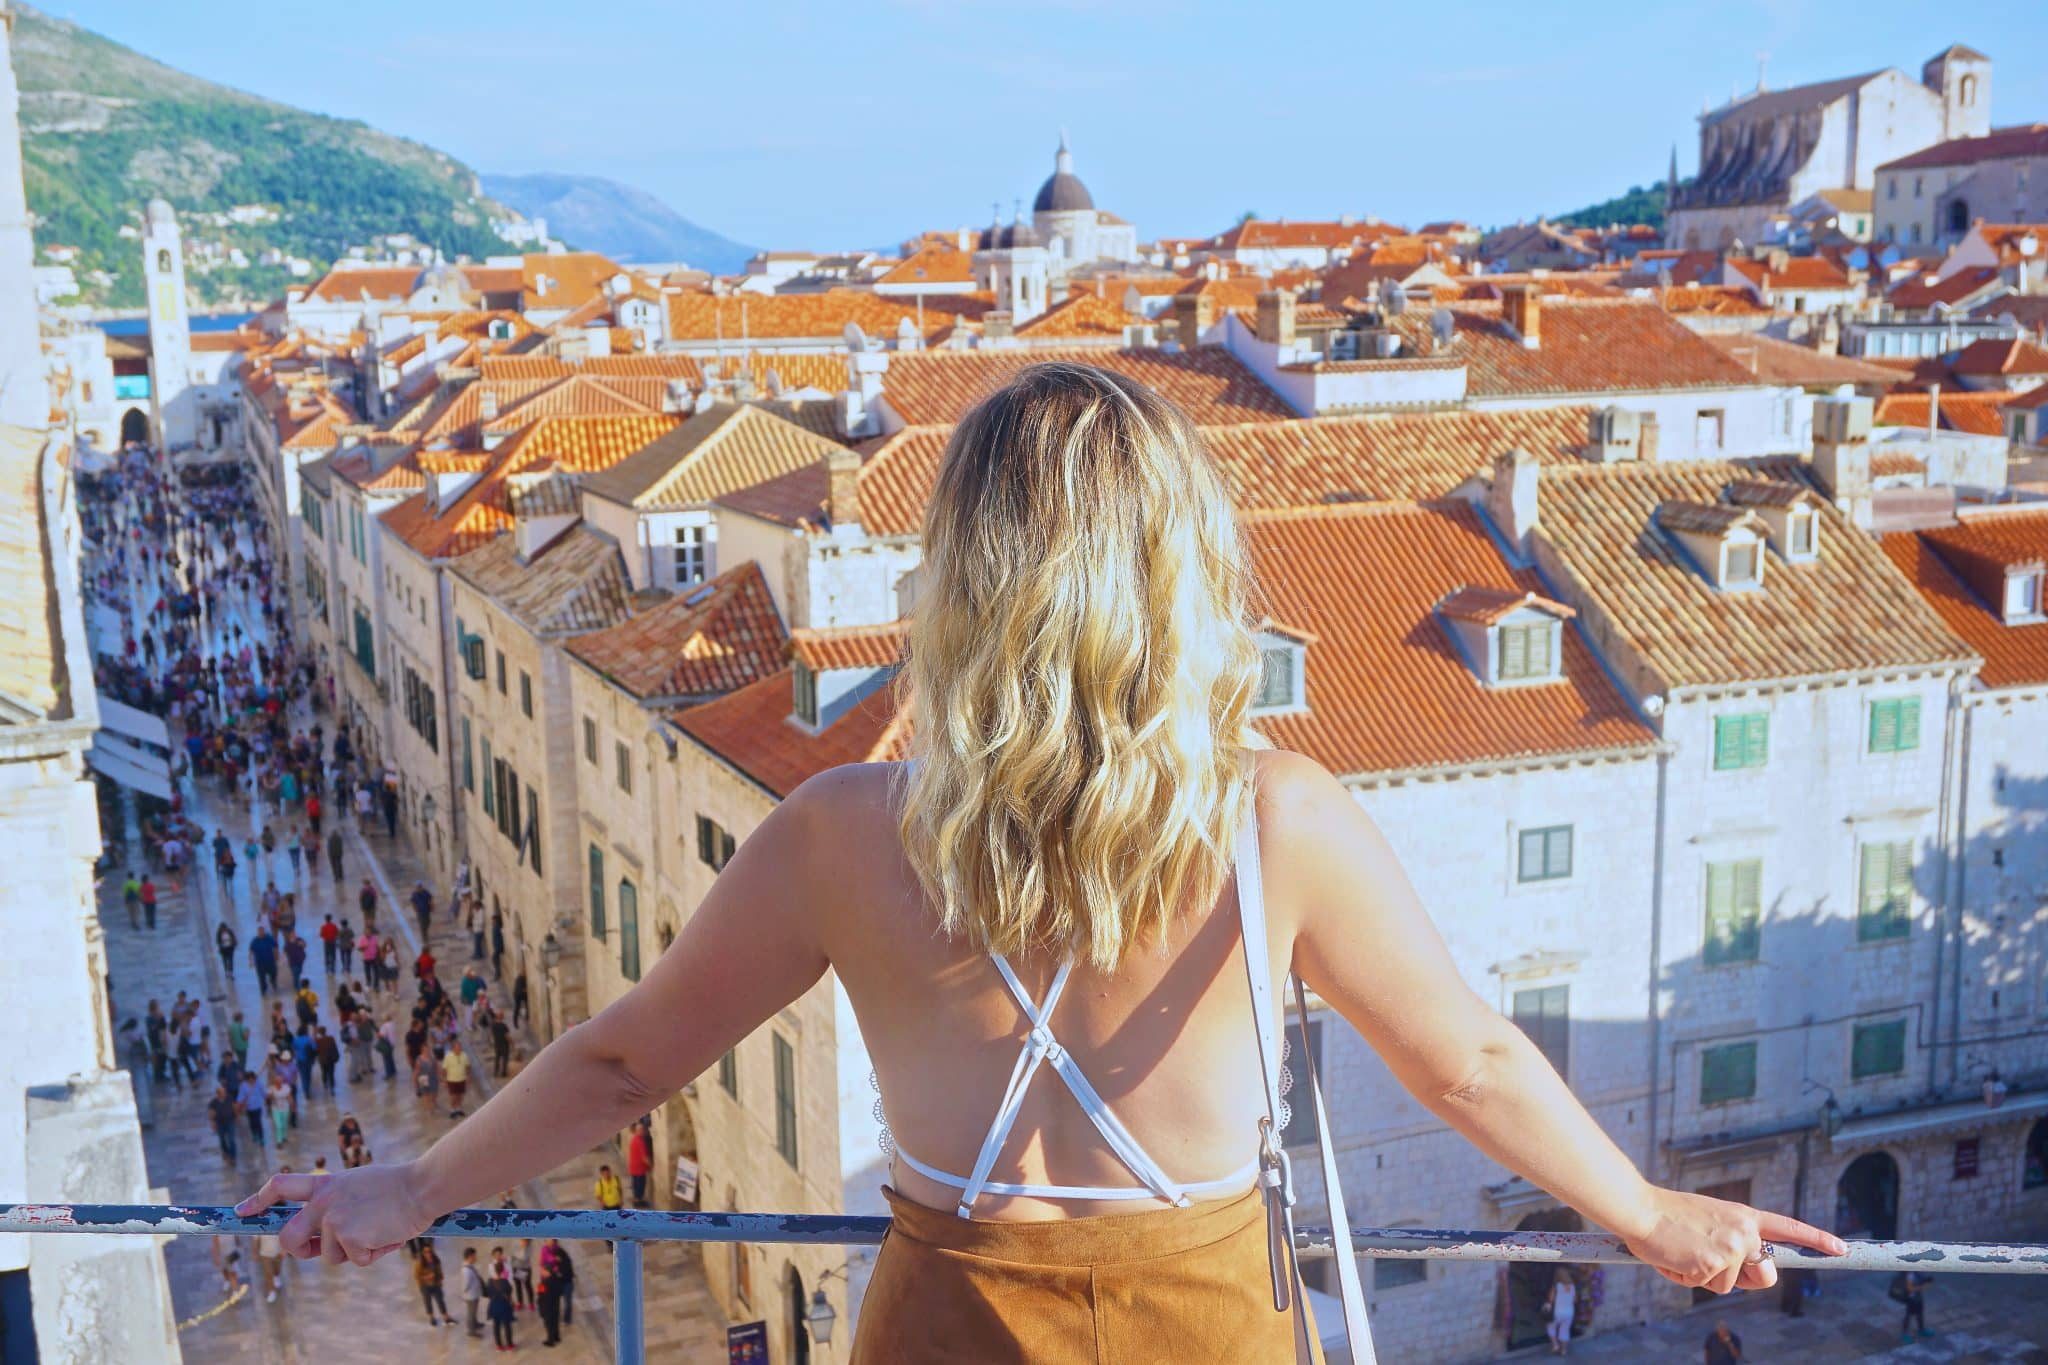 """Blonde woman in tan skirt looking over Dubrovnik's Old Town with orange roofs and the """"Stradun"""" street. This is a must see to add to any Dubrovnik travel guide."""